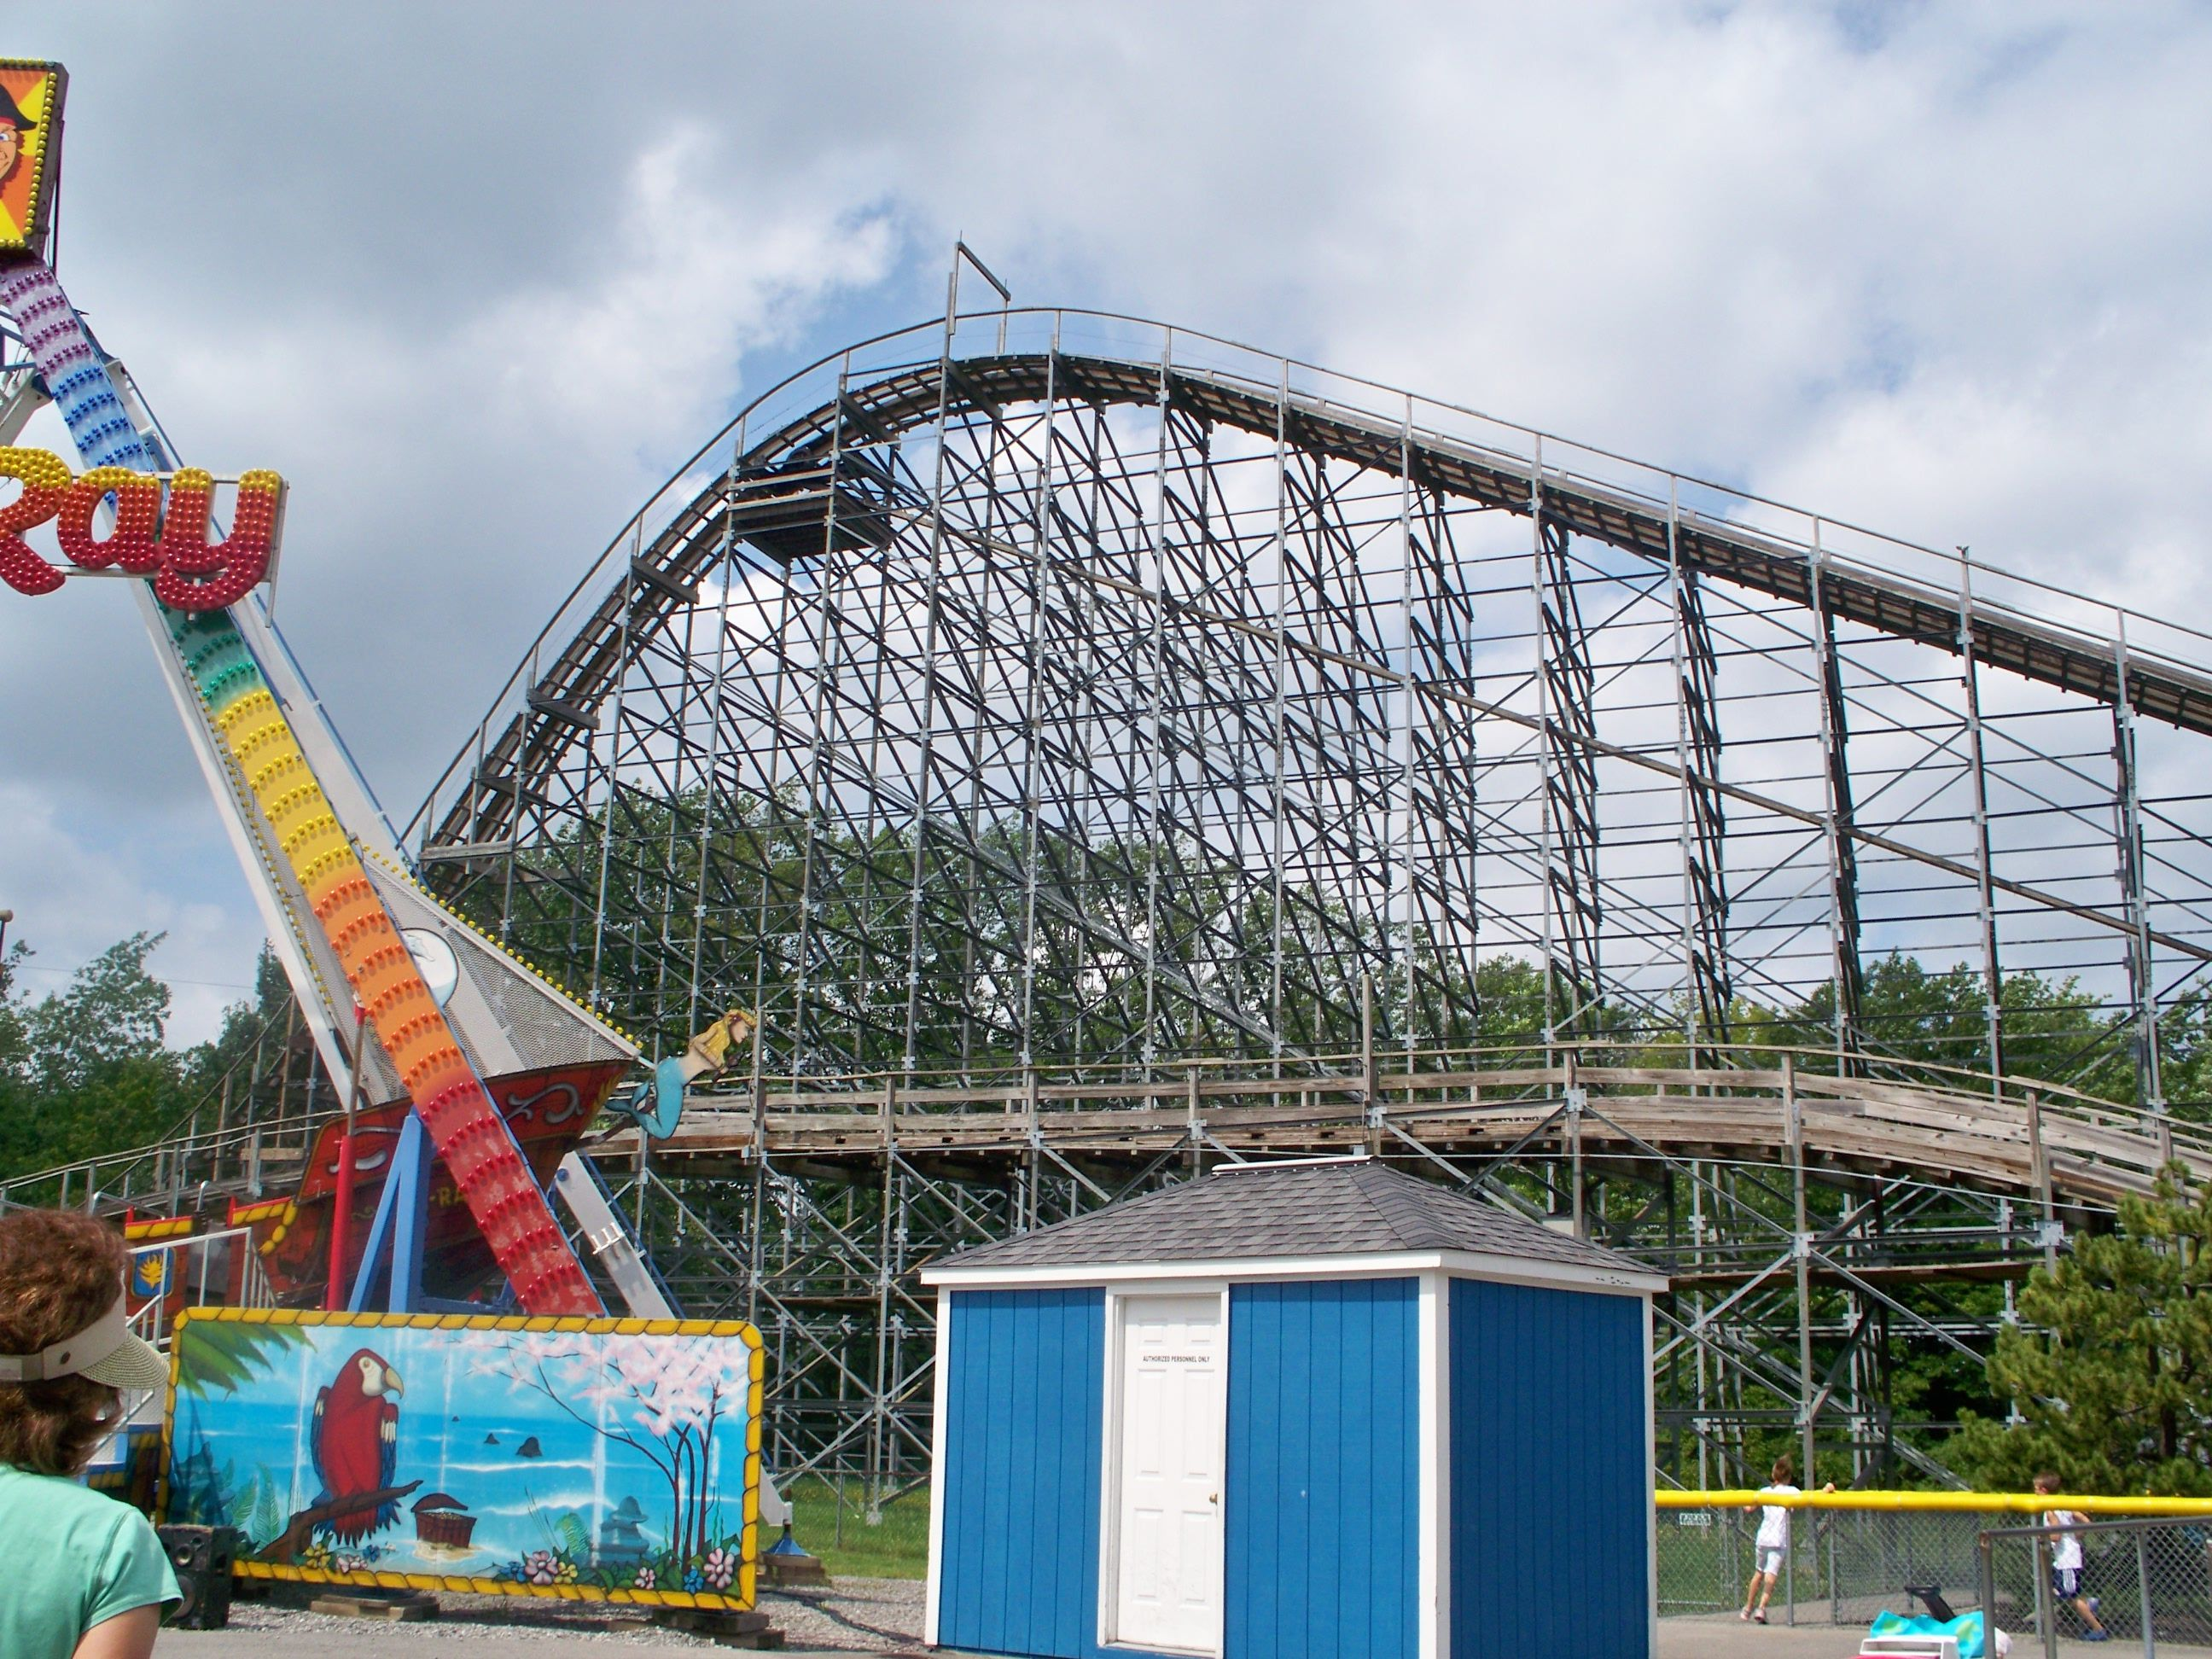 Silver Comet Roller Coaster Wikipedia The Free Encyclopedia - Pedal powered skycycle rollercoaster japan amazing